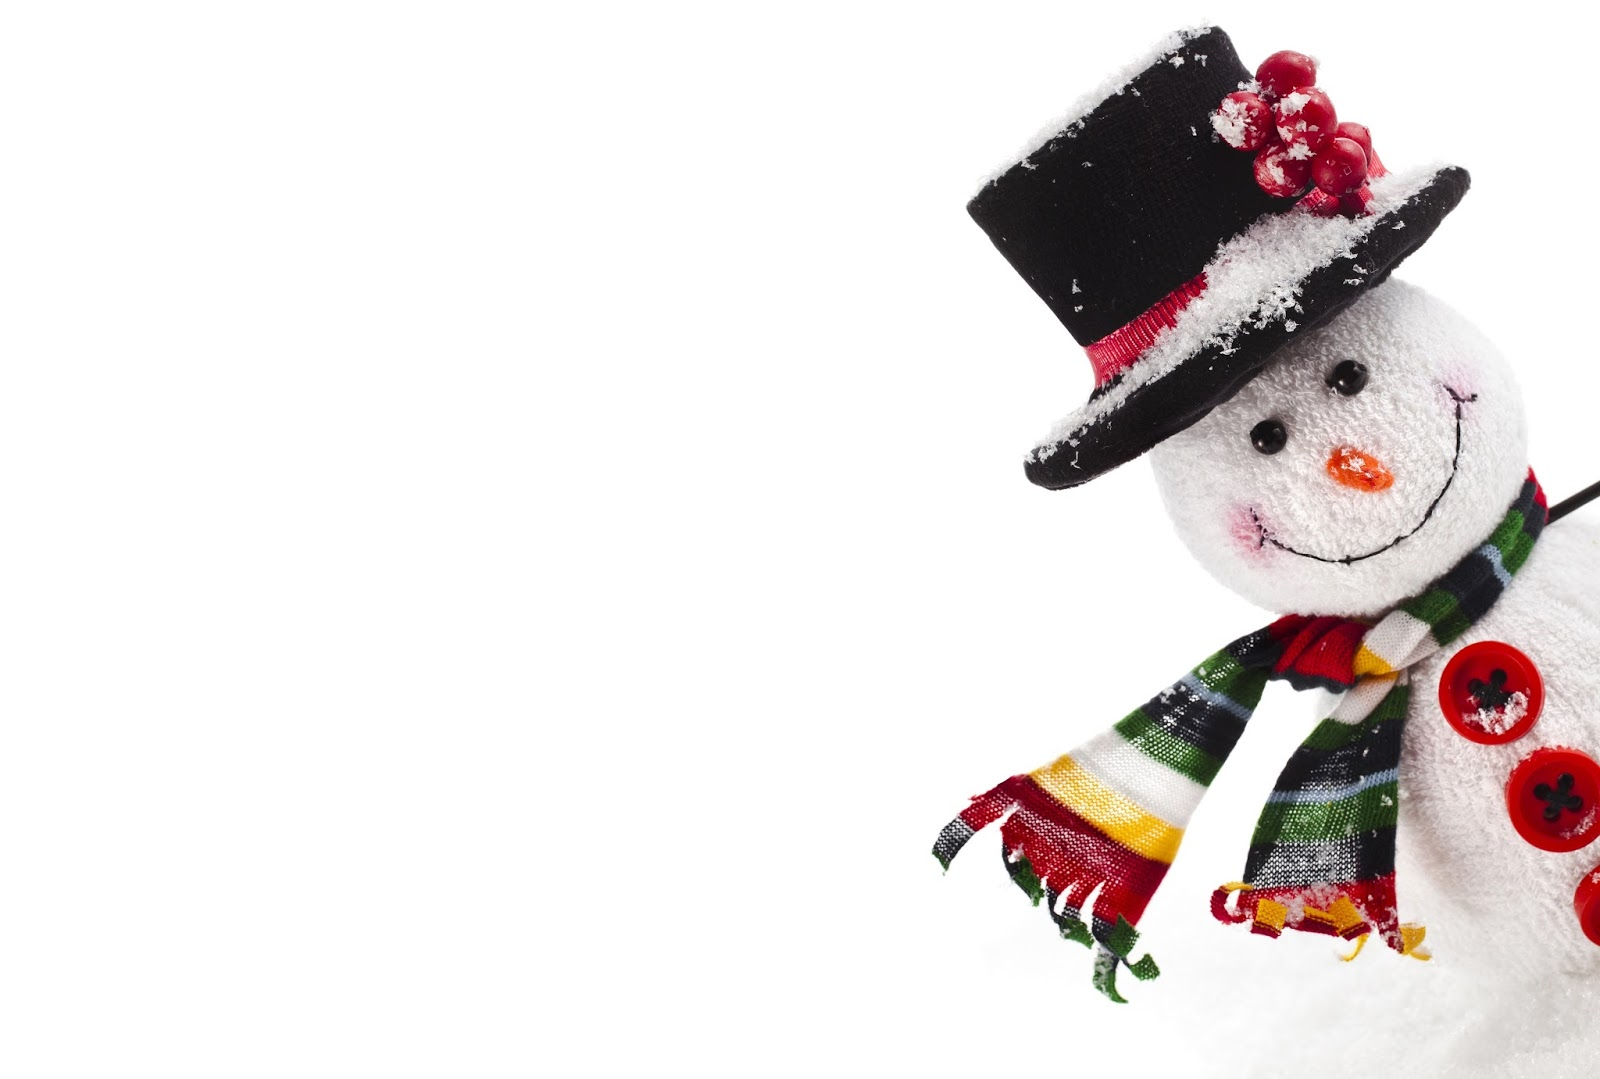 Cute Christmas snowman pictures merry Xmas wallpapers PIXHOME - Bear Decorations For Home